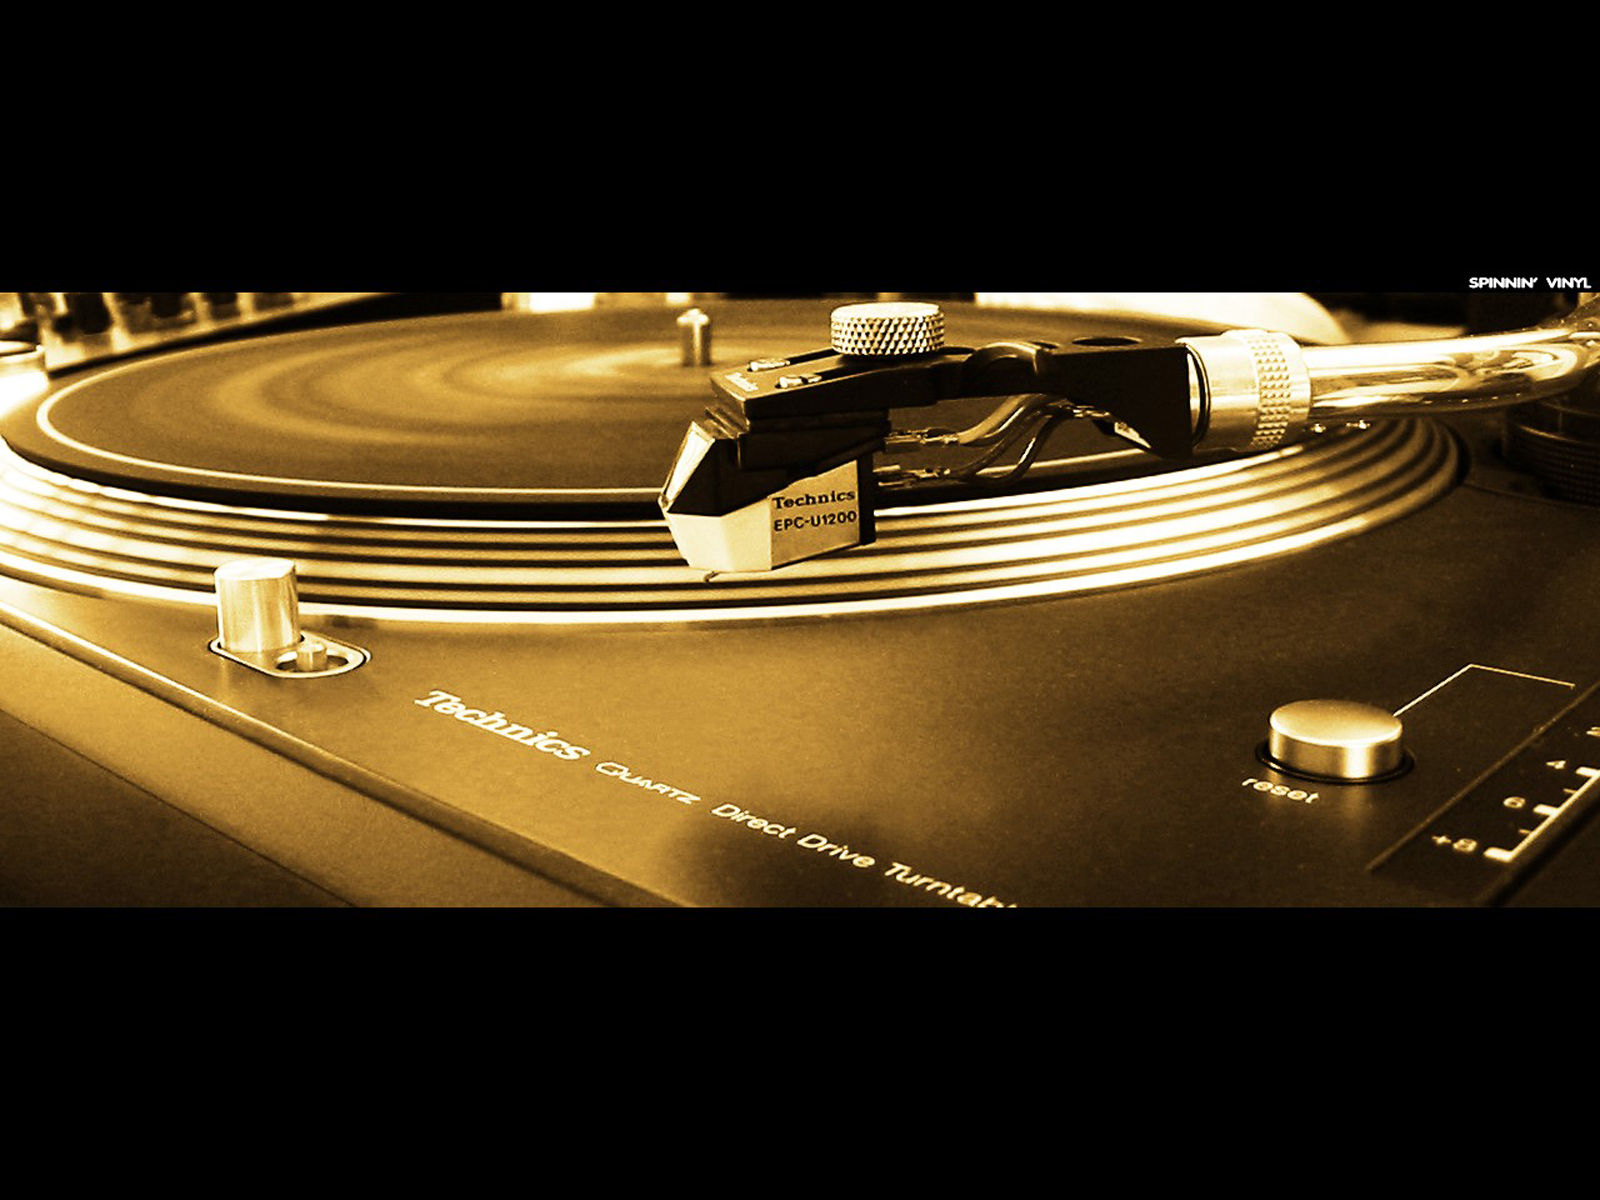 http://1.bp.blogspot.com/-YN_1ysGmgDU/Too8CAHAv5I/AAAAAAAABdY/Nrr5fSyltk0/s1600/DJs_Turntable_Vinyl_HD_Music_Reccord_player_Wallpapers_Vvallpaper.net.jpg